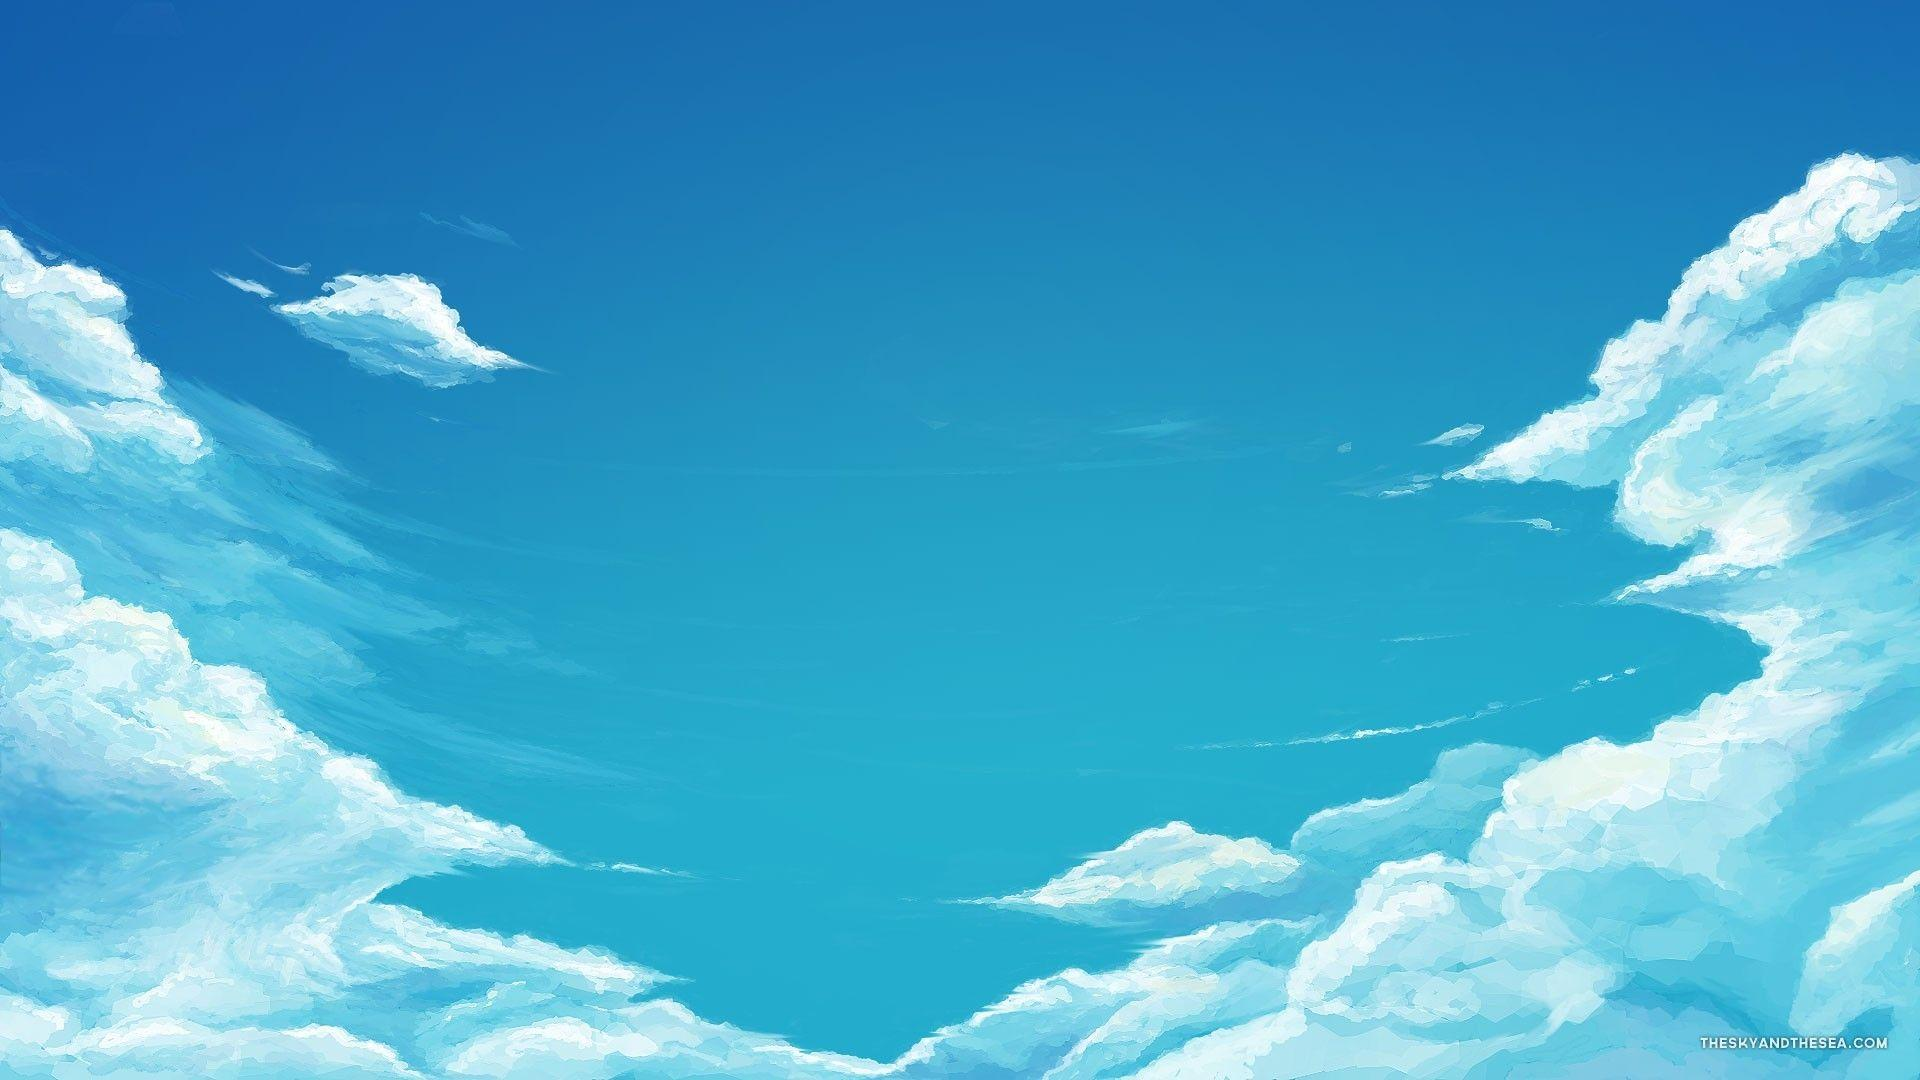 Very cool blue sky wallpapers